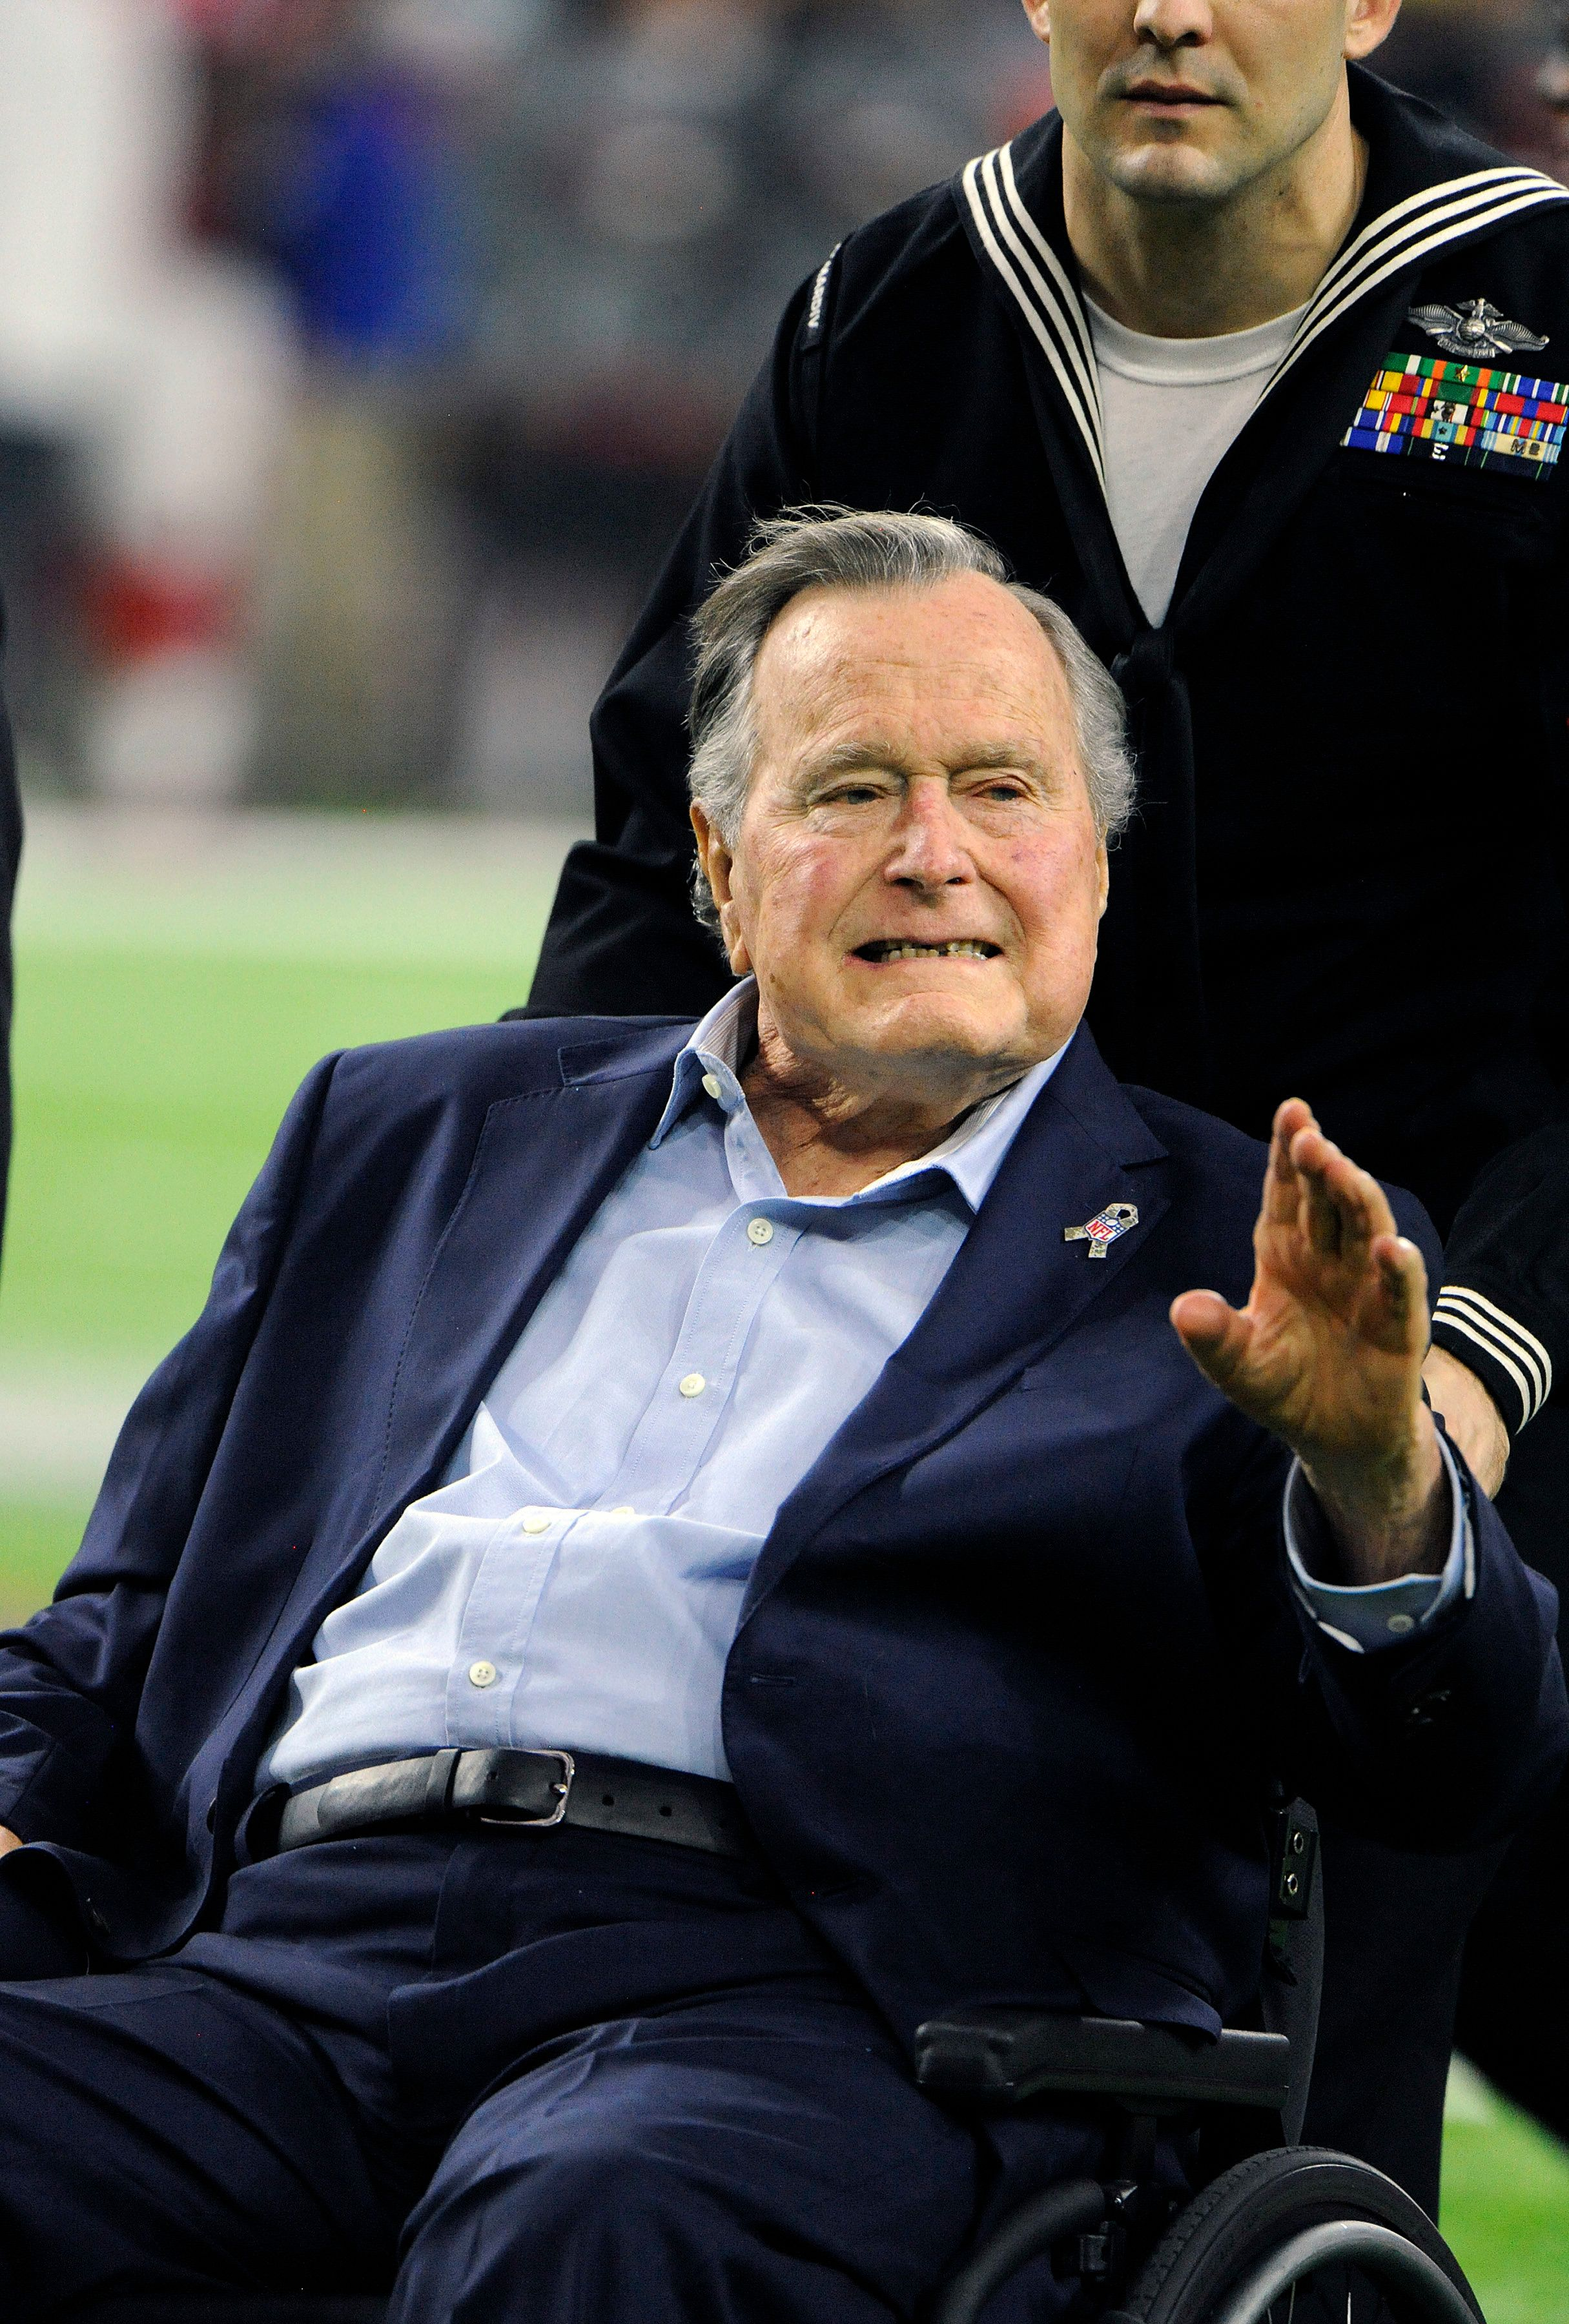 HOUSTON, TX - FEBRUARY 05:   The 41st President of the United States George Bush Sr in a wheelchair comes onto the field for the coin toss prior to the start of Super Bowl 51 between the Atlanta Falcons and the New England Patriots at NRG Stadium on February 5, 2017 in Houston, Texas. The Patriots defeat the Atlanta Falcons 34-28 in overtime. (Photo by Focus on Sport/Getty Images)